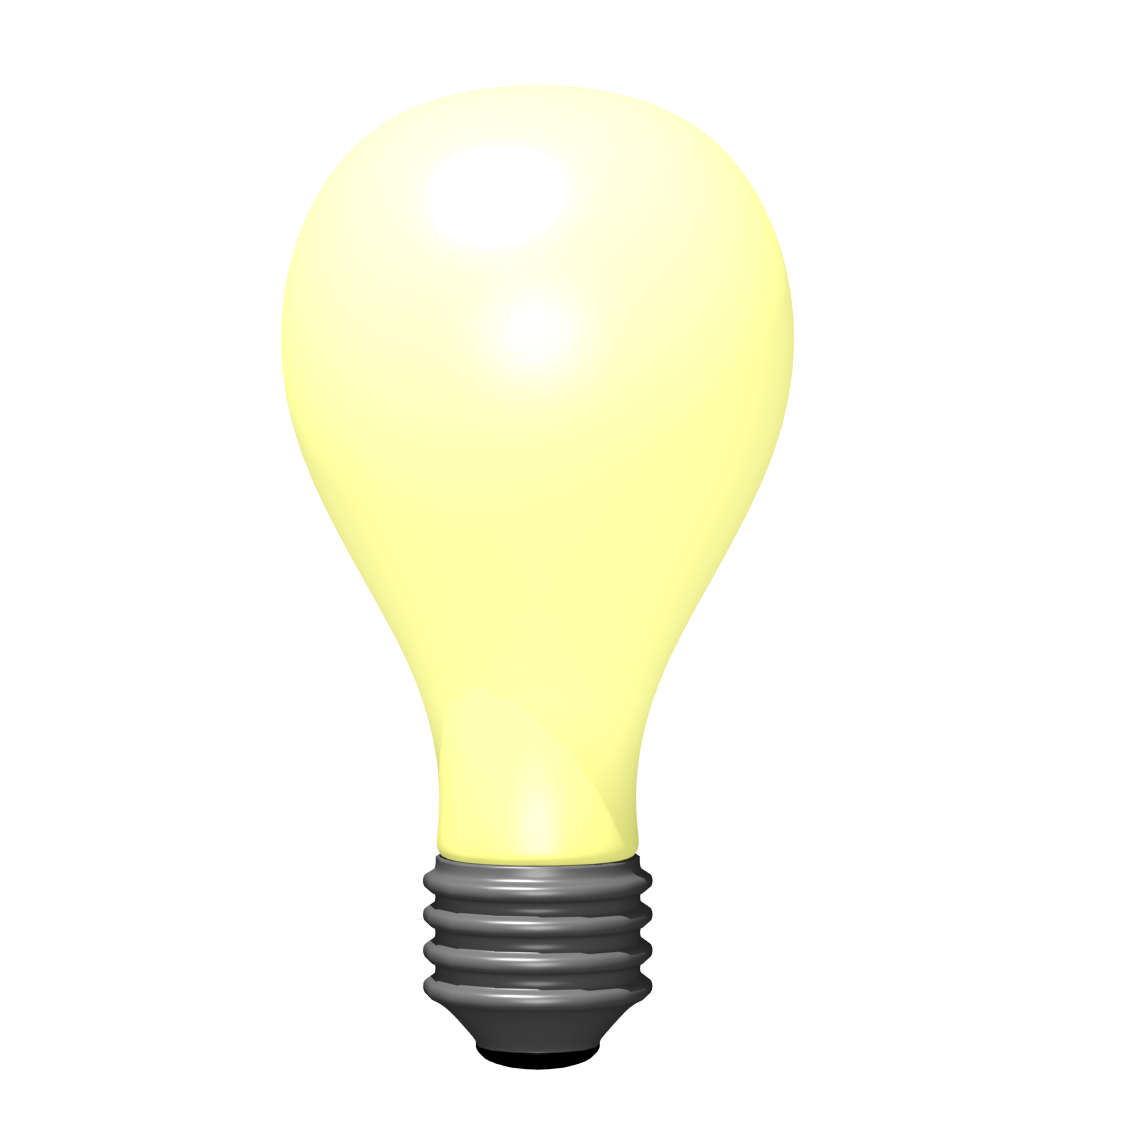 Light bulbs png. Bulb image free picture